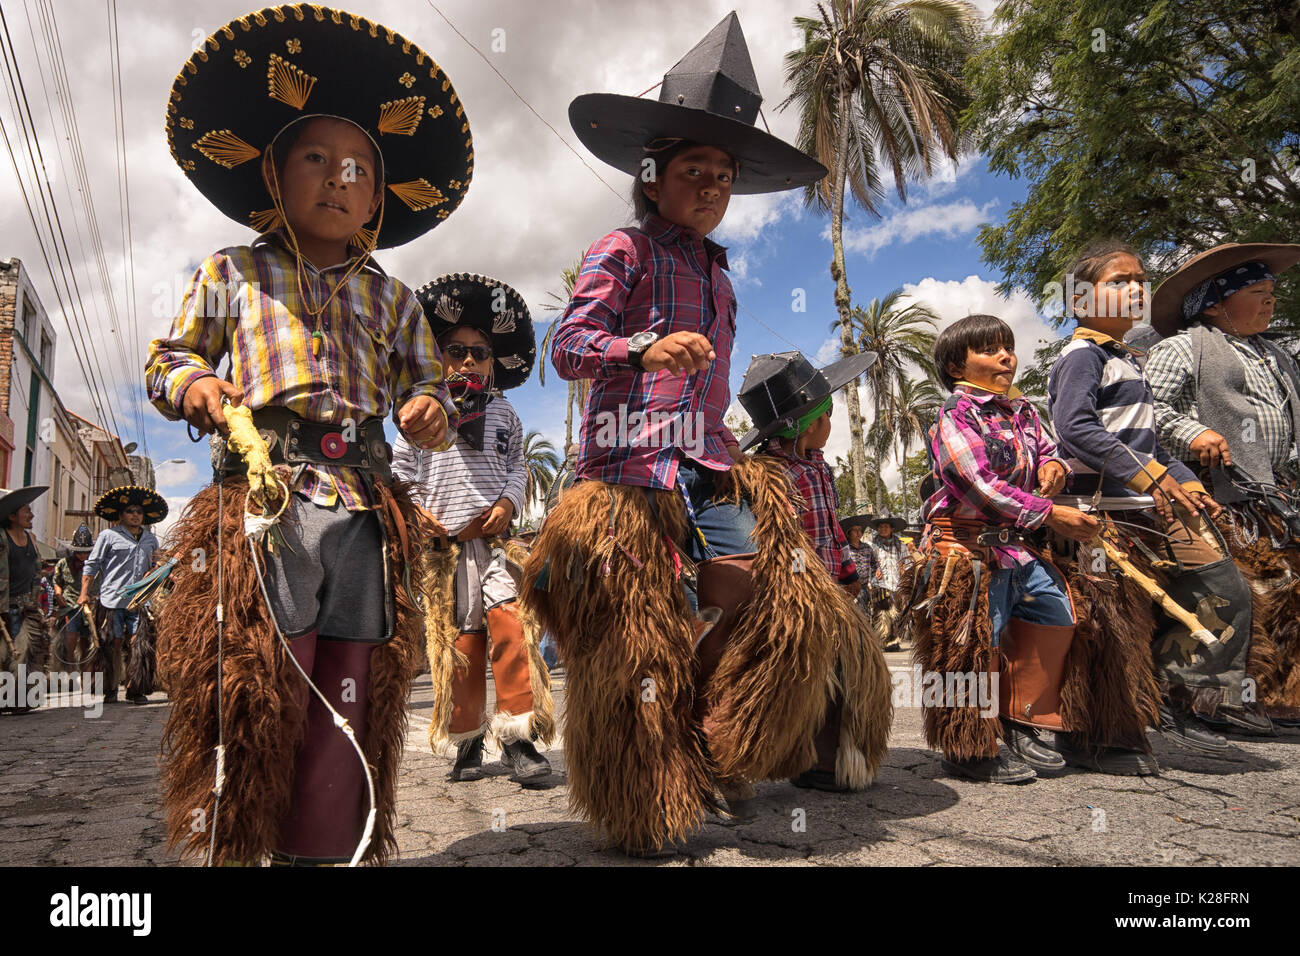 June 25, 2017 Cotacachi, Ecuador: children wearing sombreros and chaps at the Inti Raymi celebrations - Stock Image